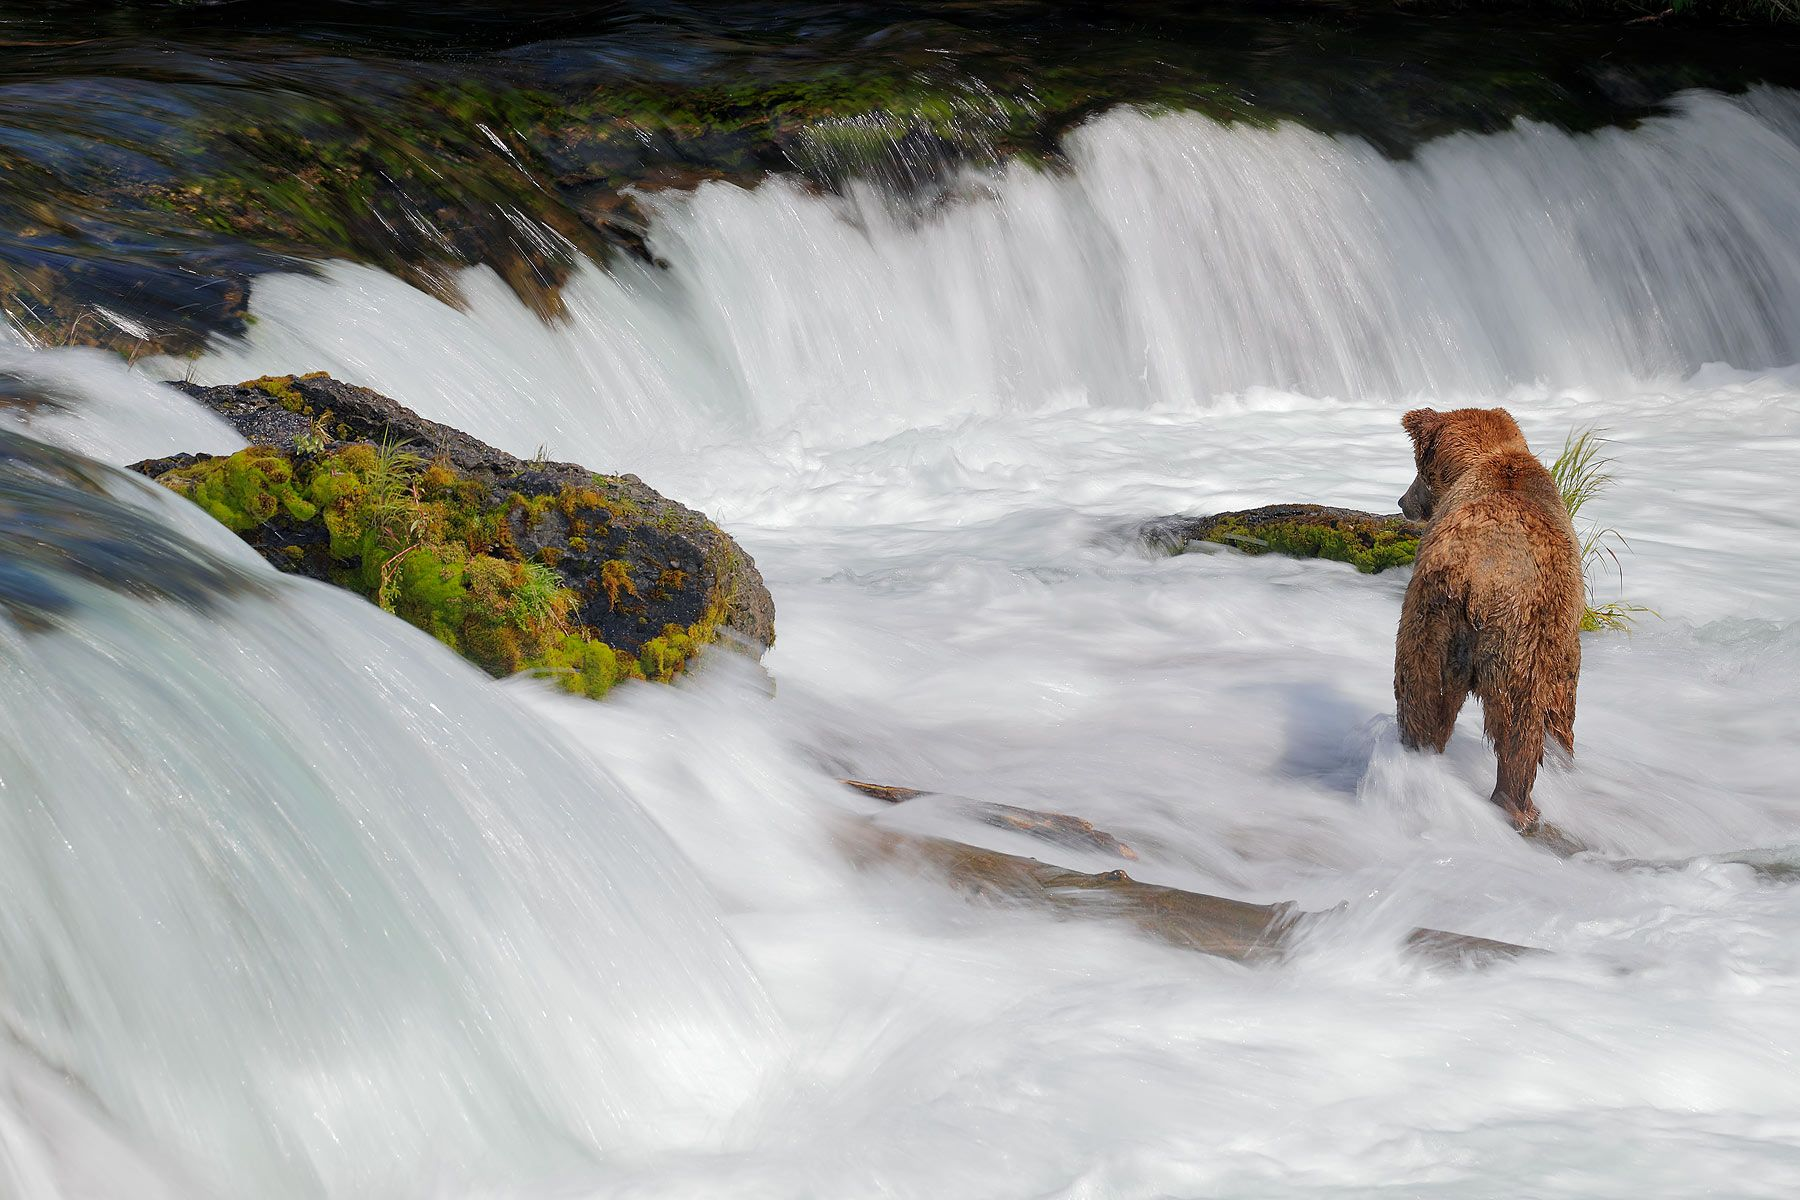 Coastal-brown-bear-in-falls-water-blur_A3I7914-Brooks-Falls,-Katmai-National-Park-&-Preserve,-AK,-USA.jpg